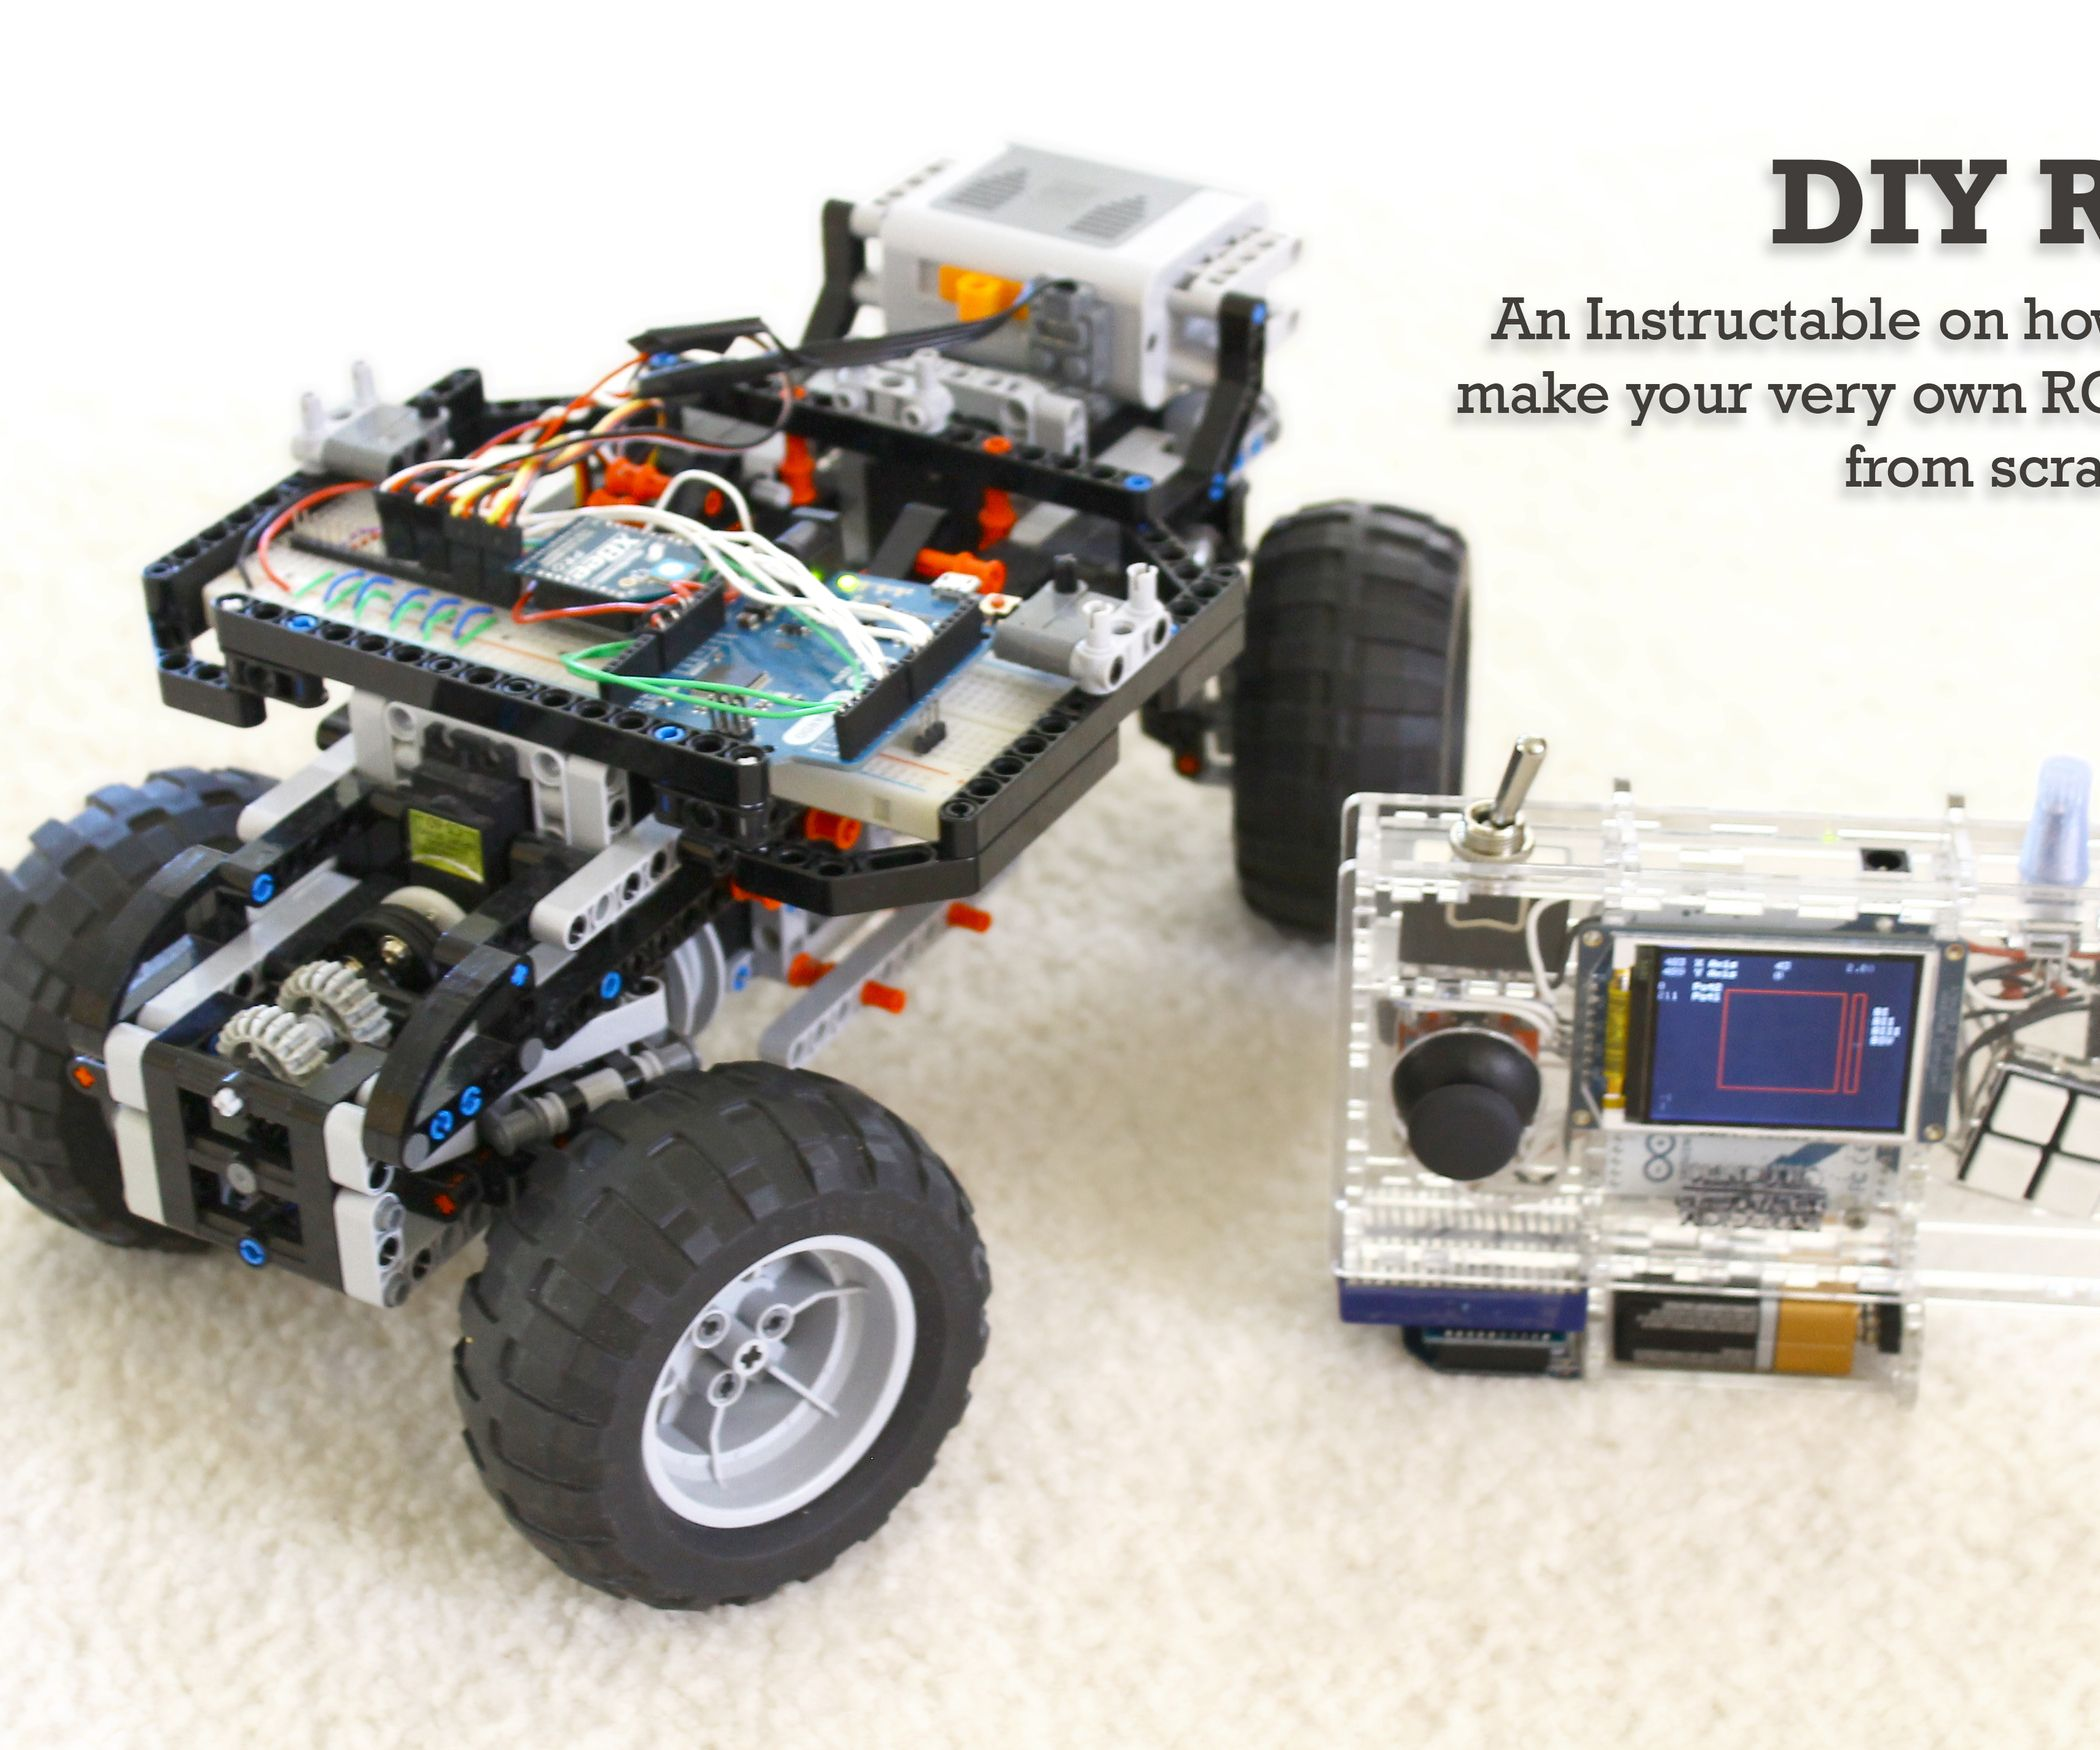 DIY Arduino Remote Control and Lego RC Vehicle!! | Pinterest ...